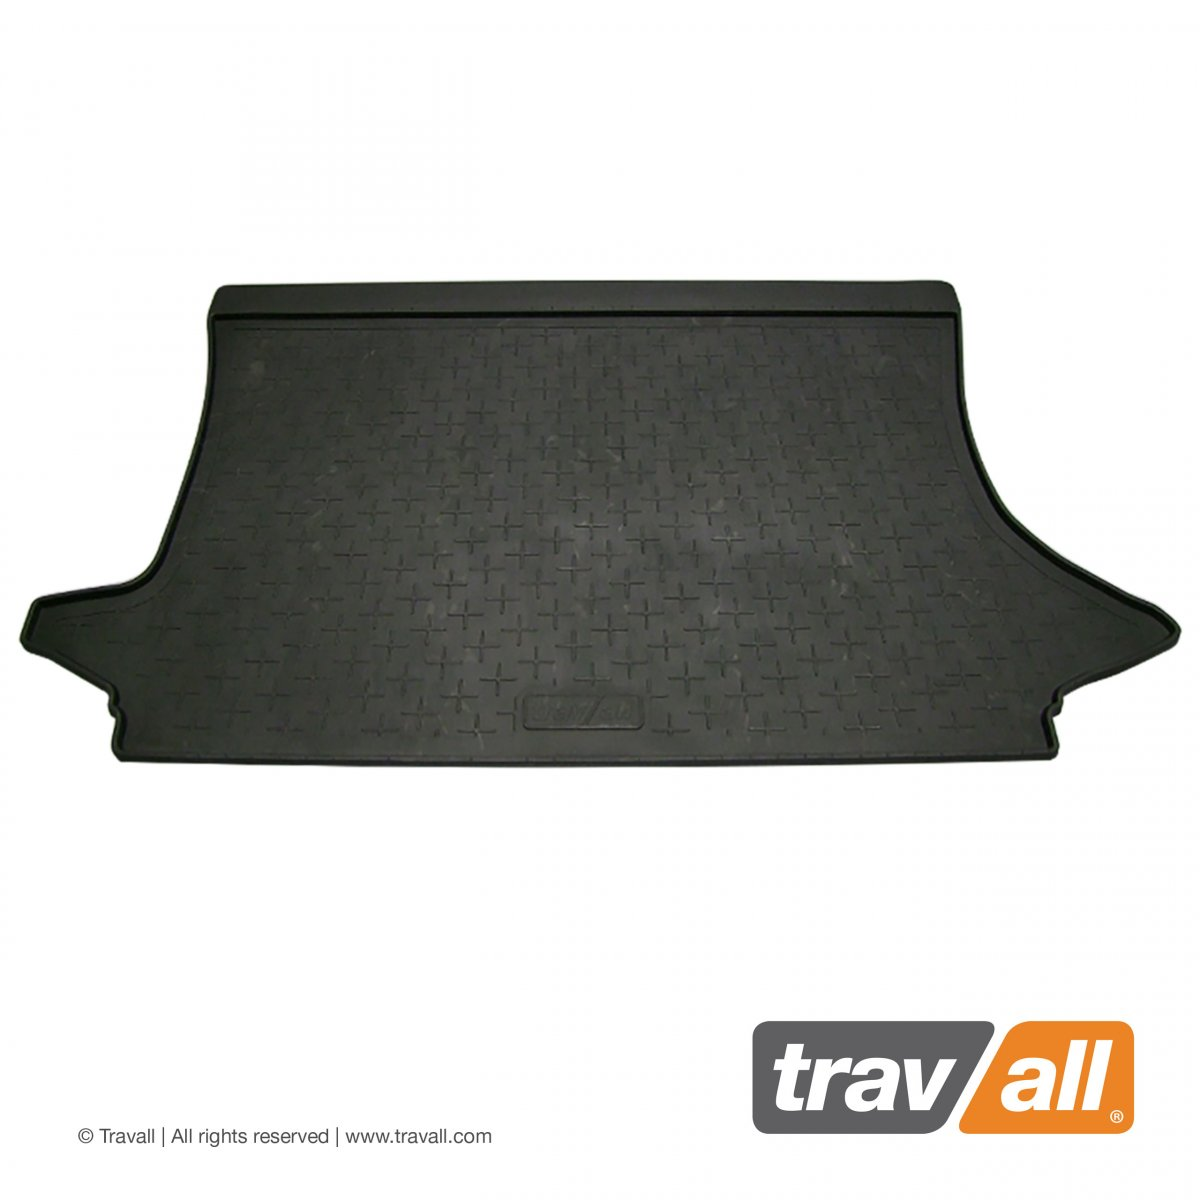 Travall® CARGOMAT for Ford Fiesta Hatchback (2002-2008) / ST (2005-2008)